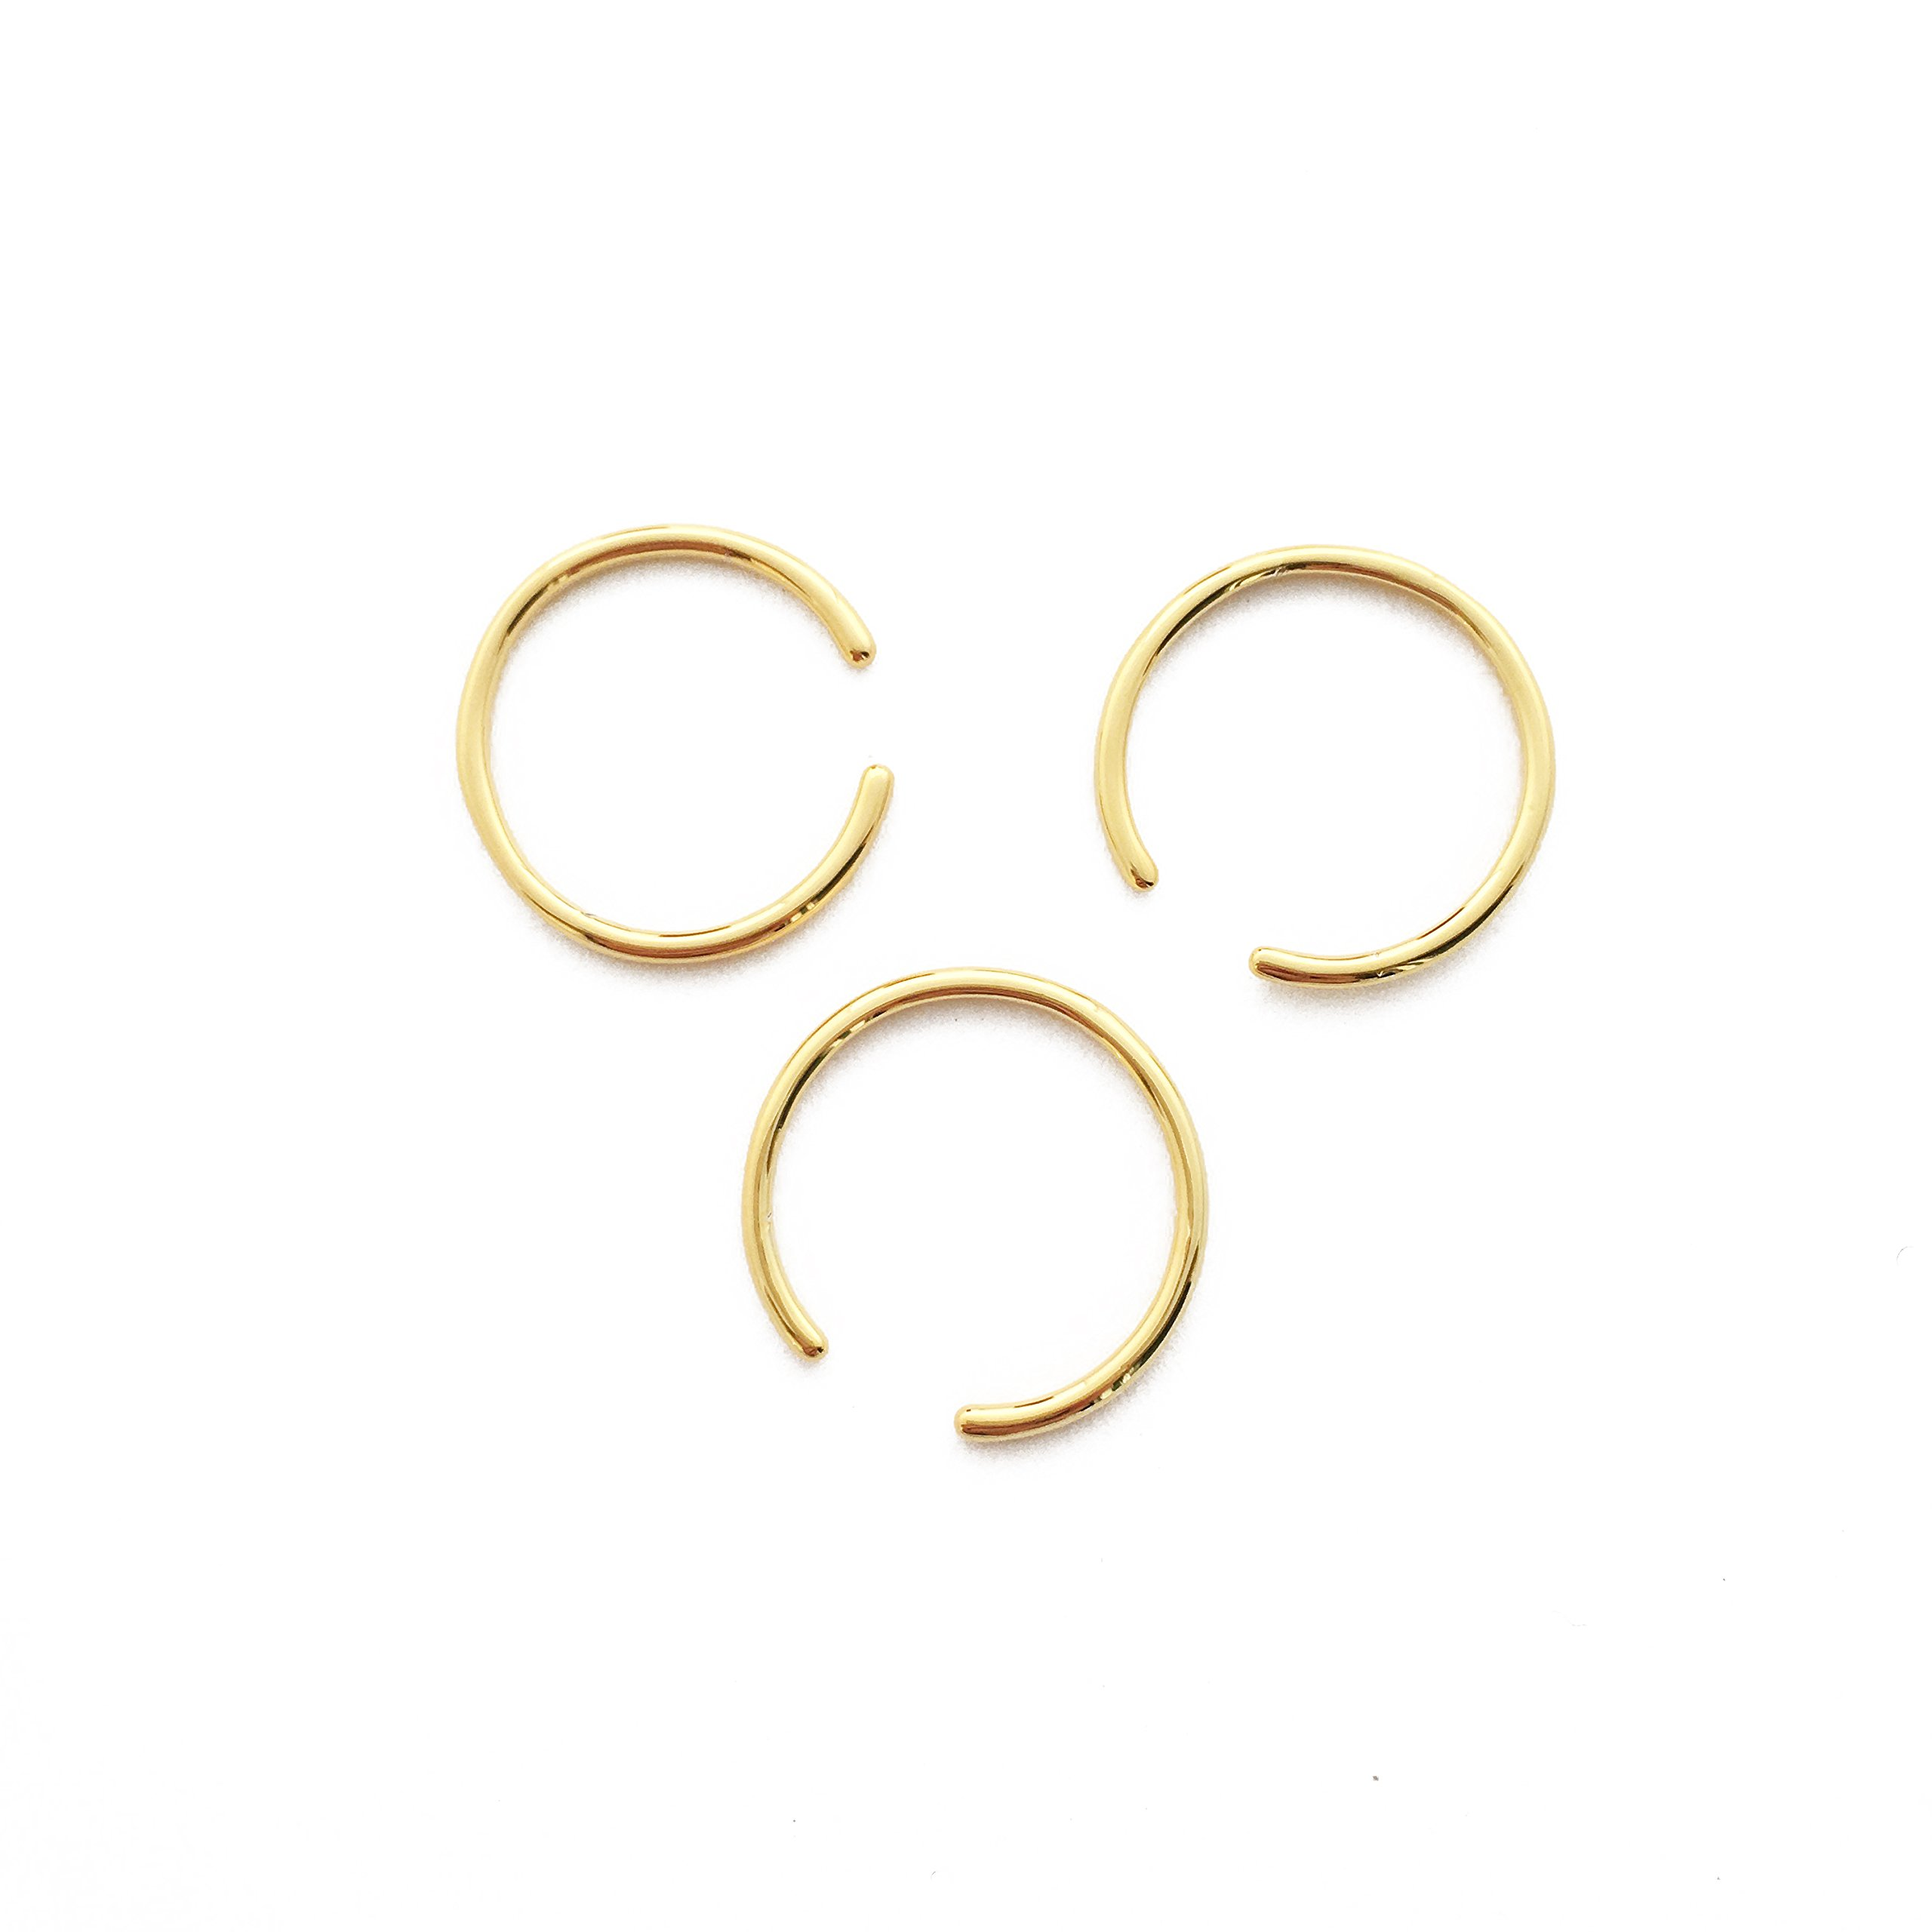 HONEYCAT Open Adjustable Stacking Rings Trio Set in 24k Gold Plate, 18k Rose Gold Plate Sterling Silver Plate | Madewell, Minimalist, Delicate Jewelry (Gold)